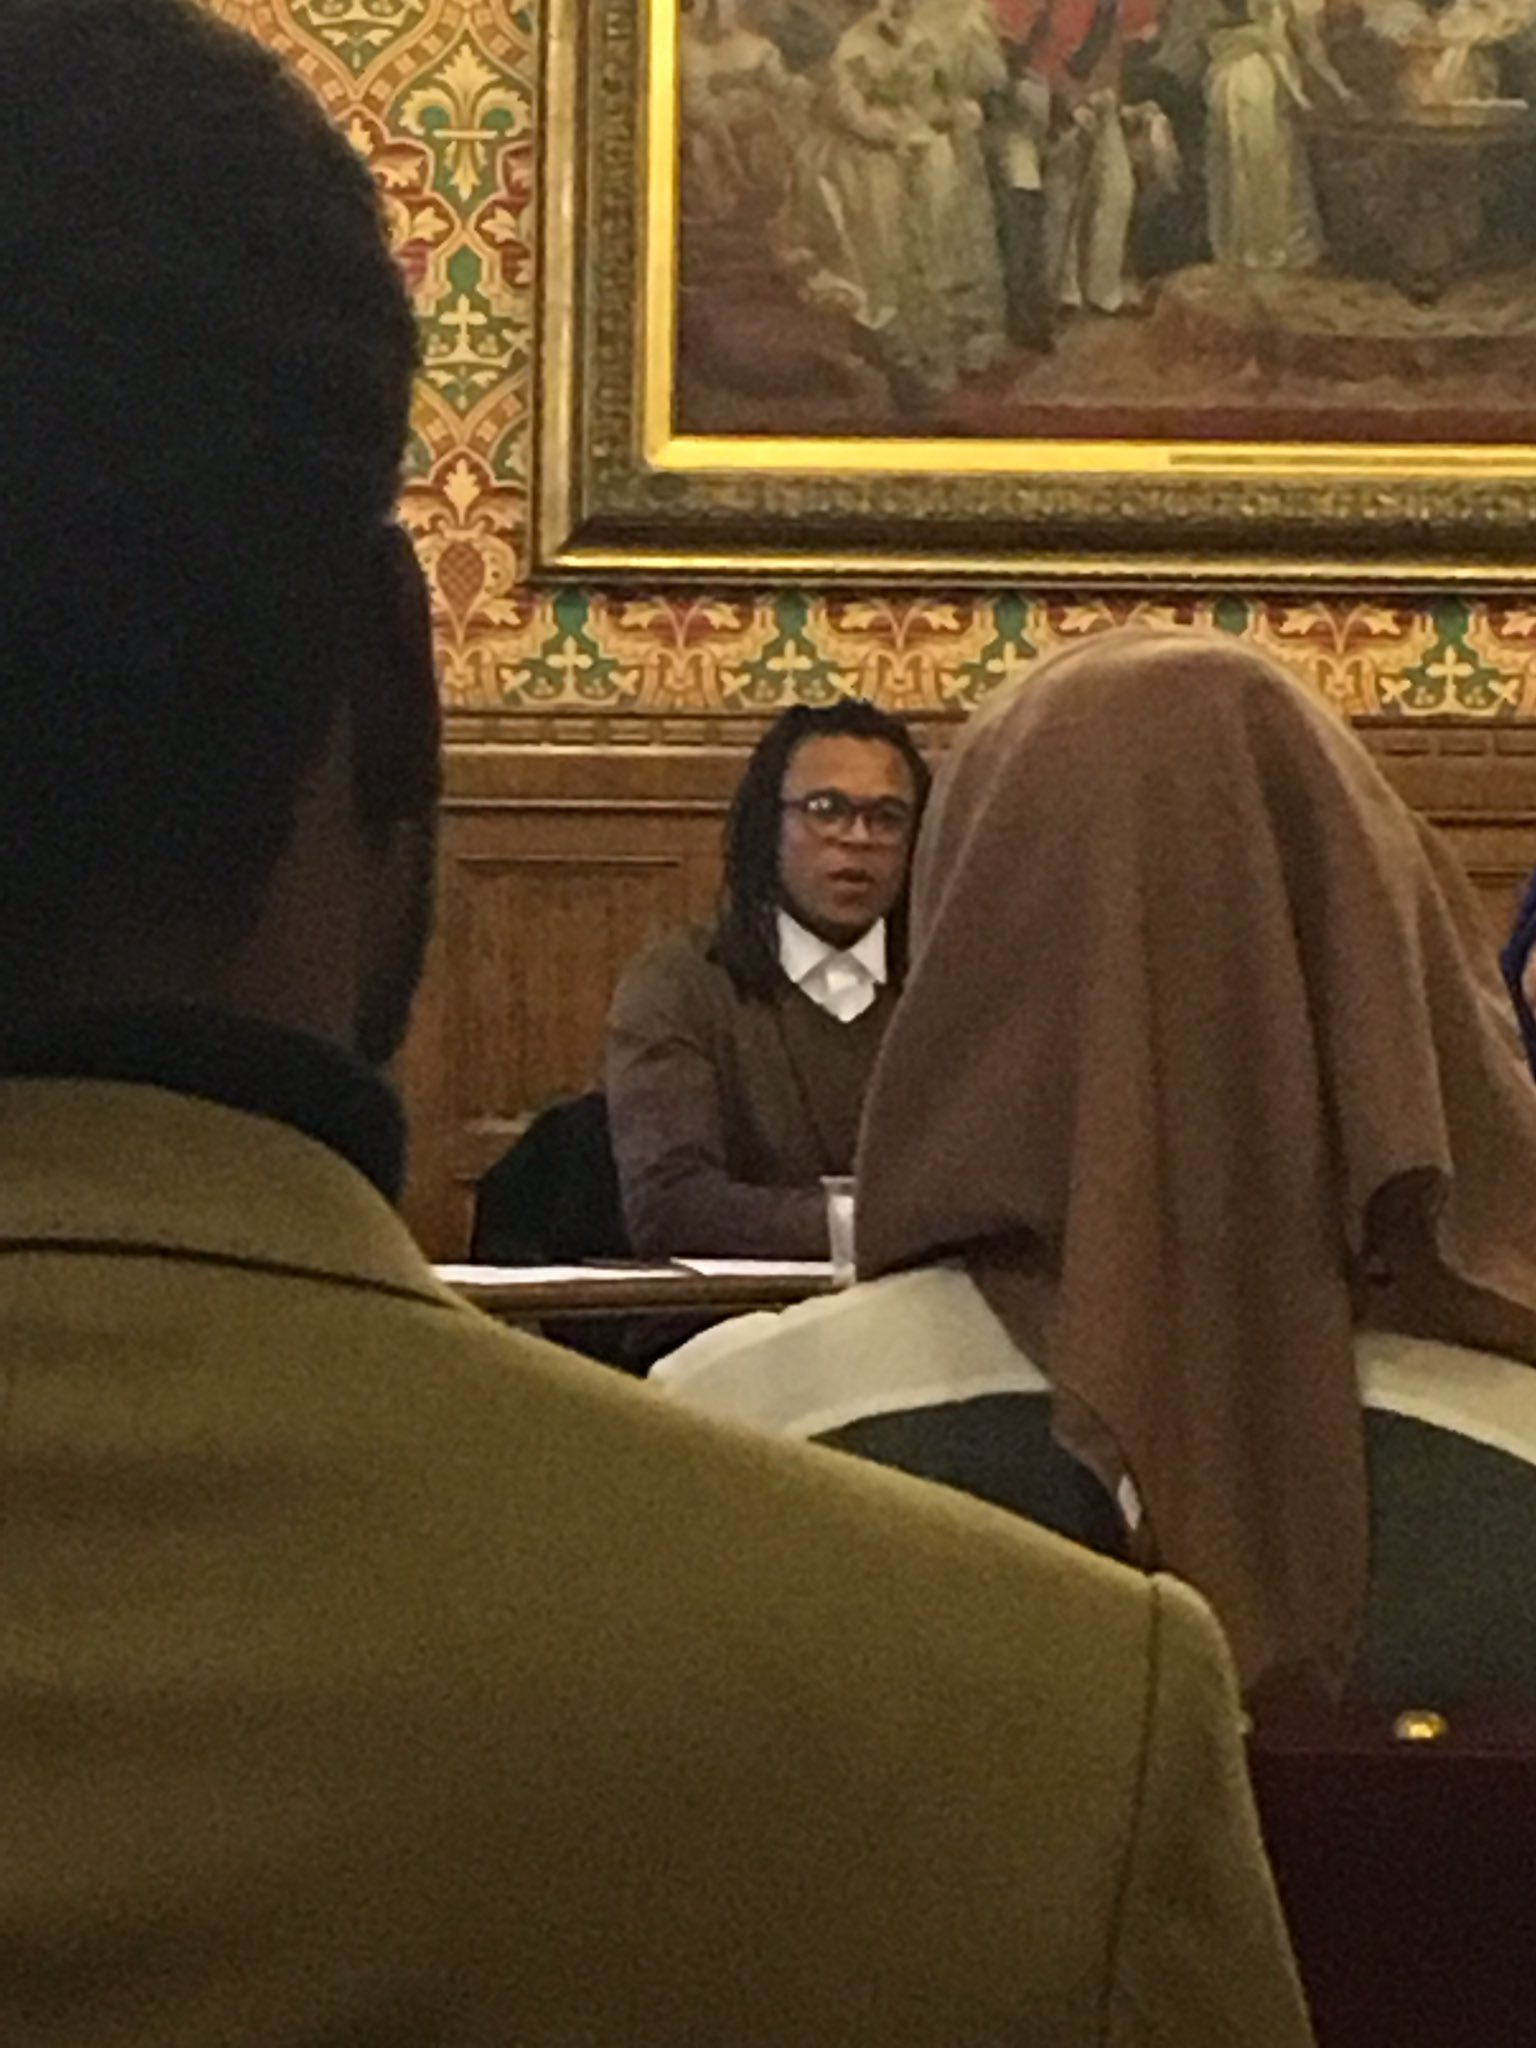 Sharing #HultUndergrad good practices at @GEWUK workshop on #entrepreneurship hosted @ #HouseOfLords feat. football legend Edgar Davids ✌🏻️ https://t.co/sc8kMu50LC